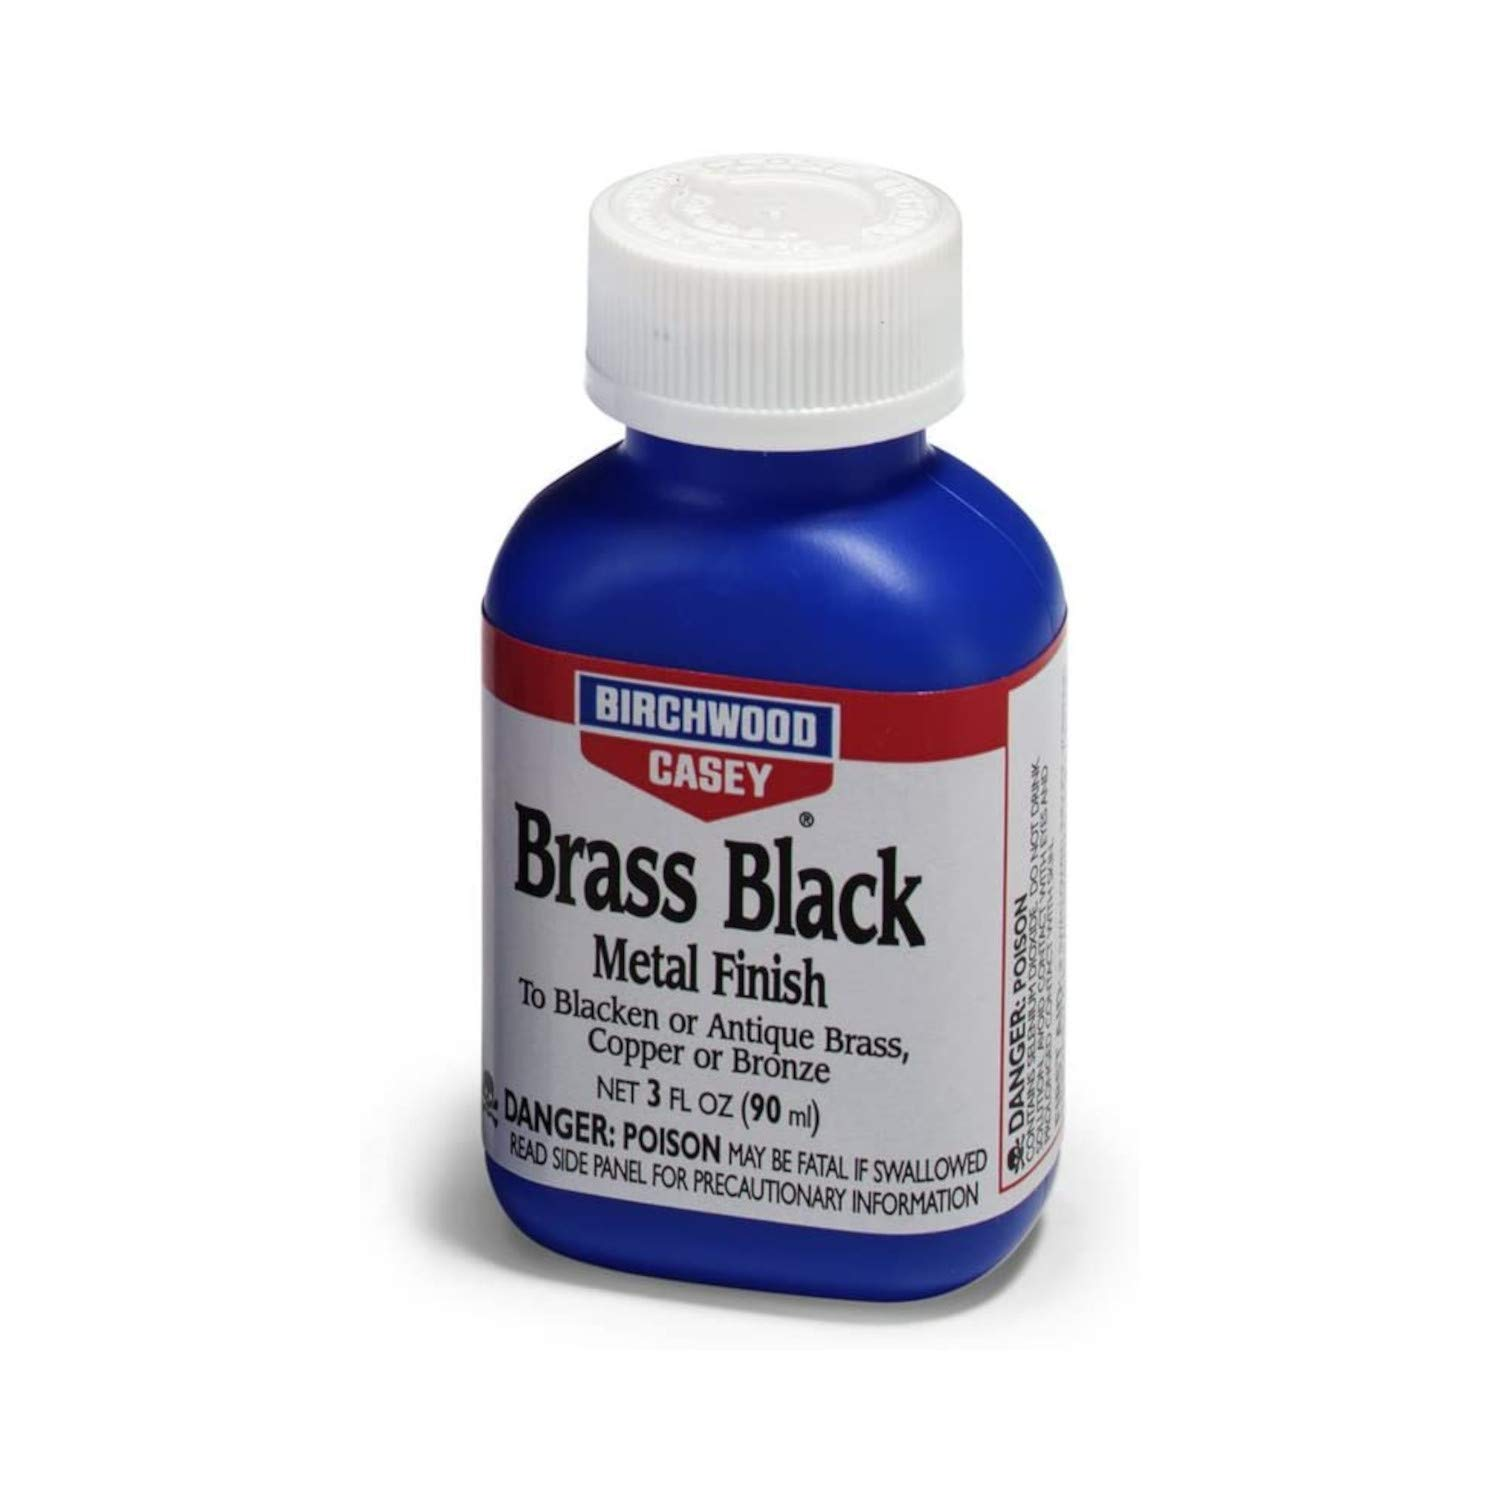 Birchwood Casey Brass Black Metal Finish, 3-Ounce